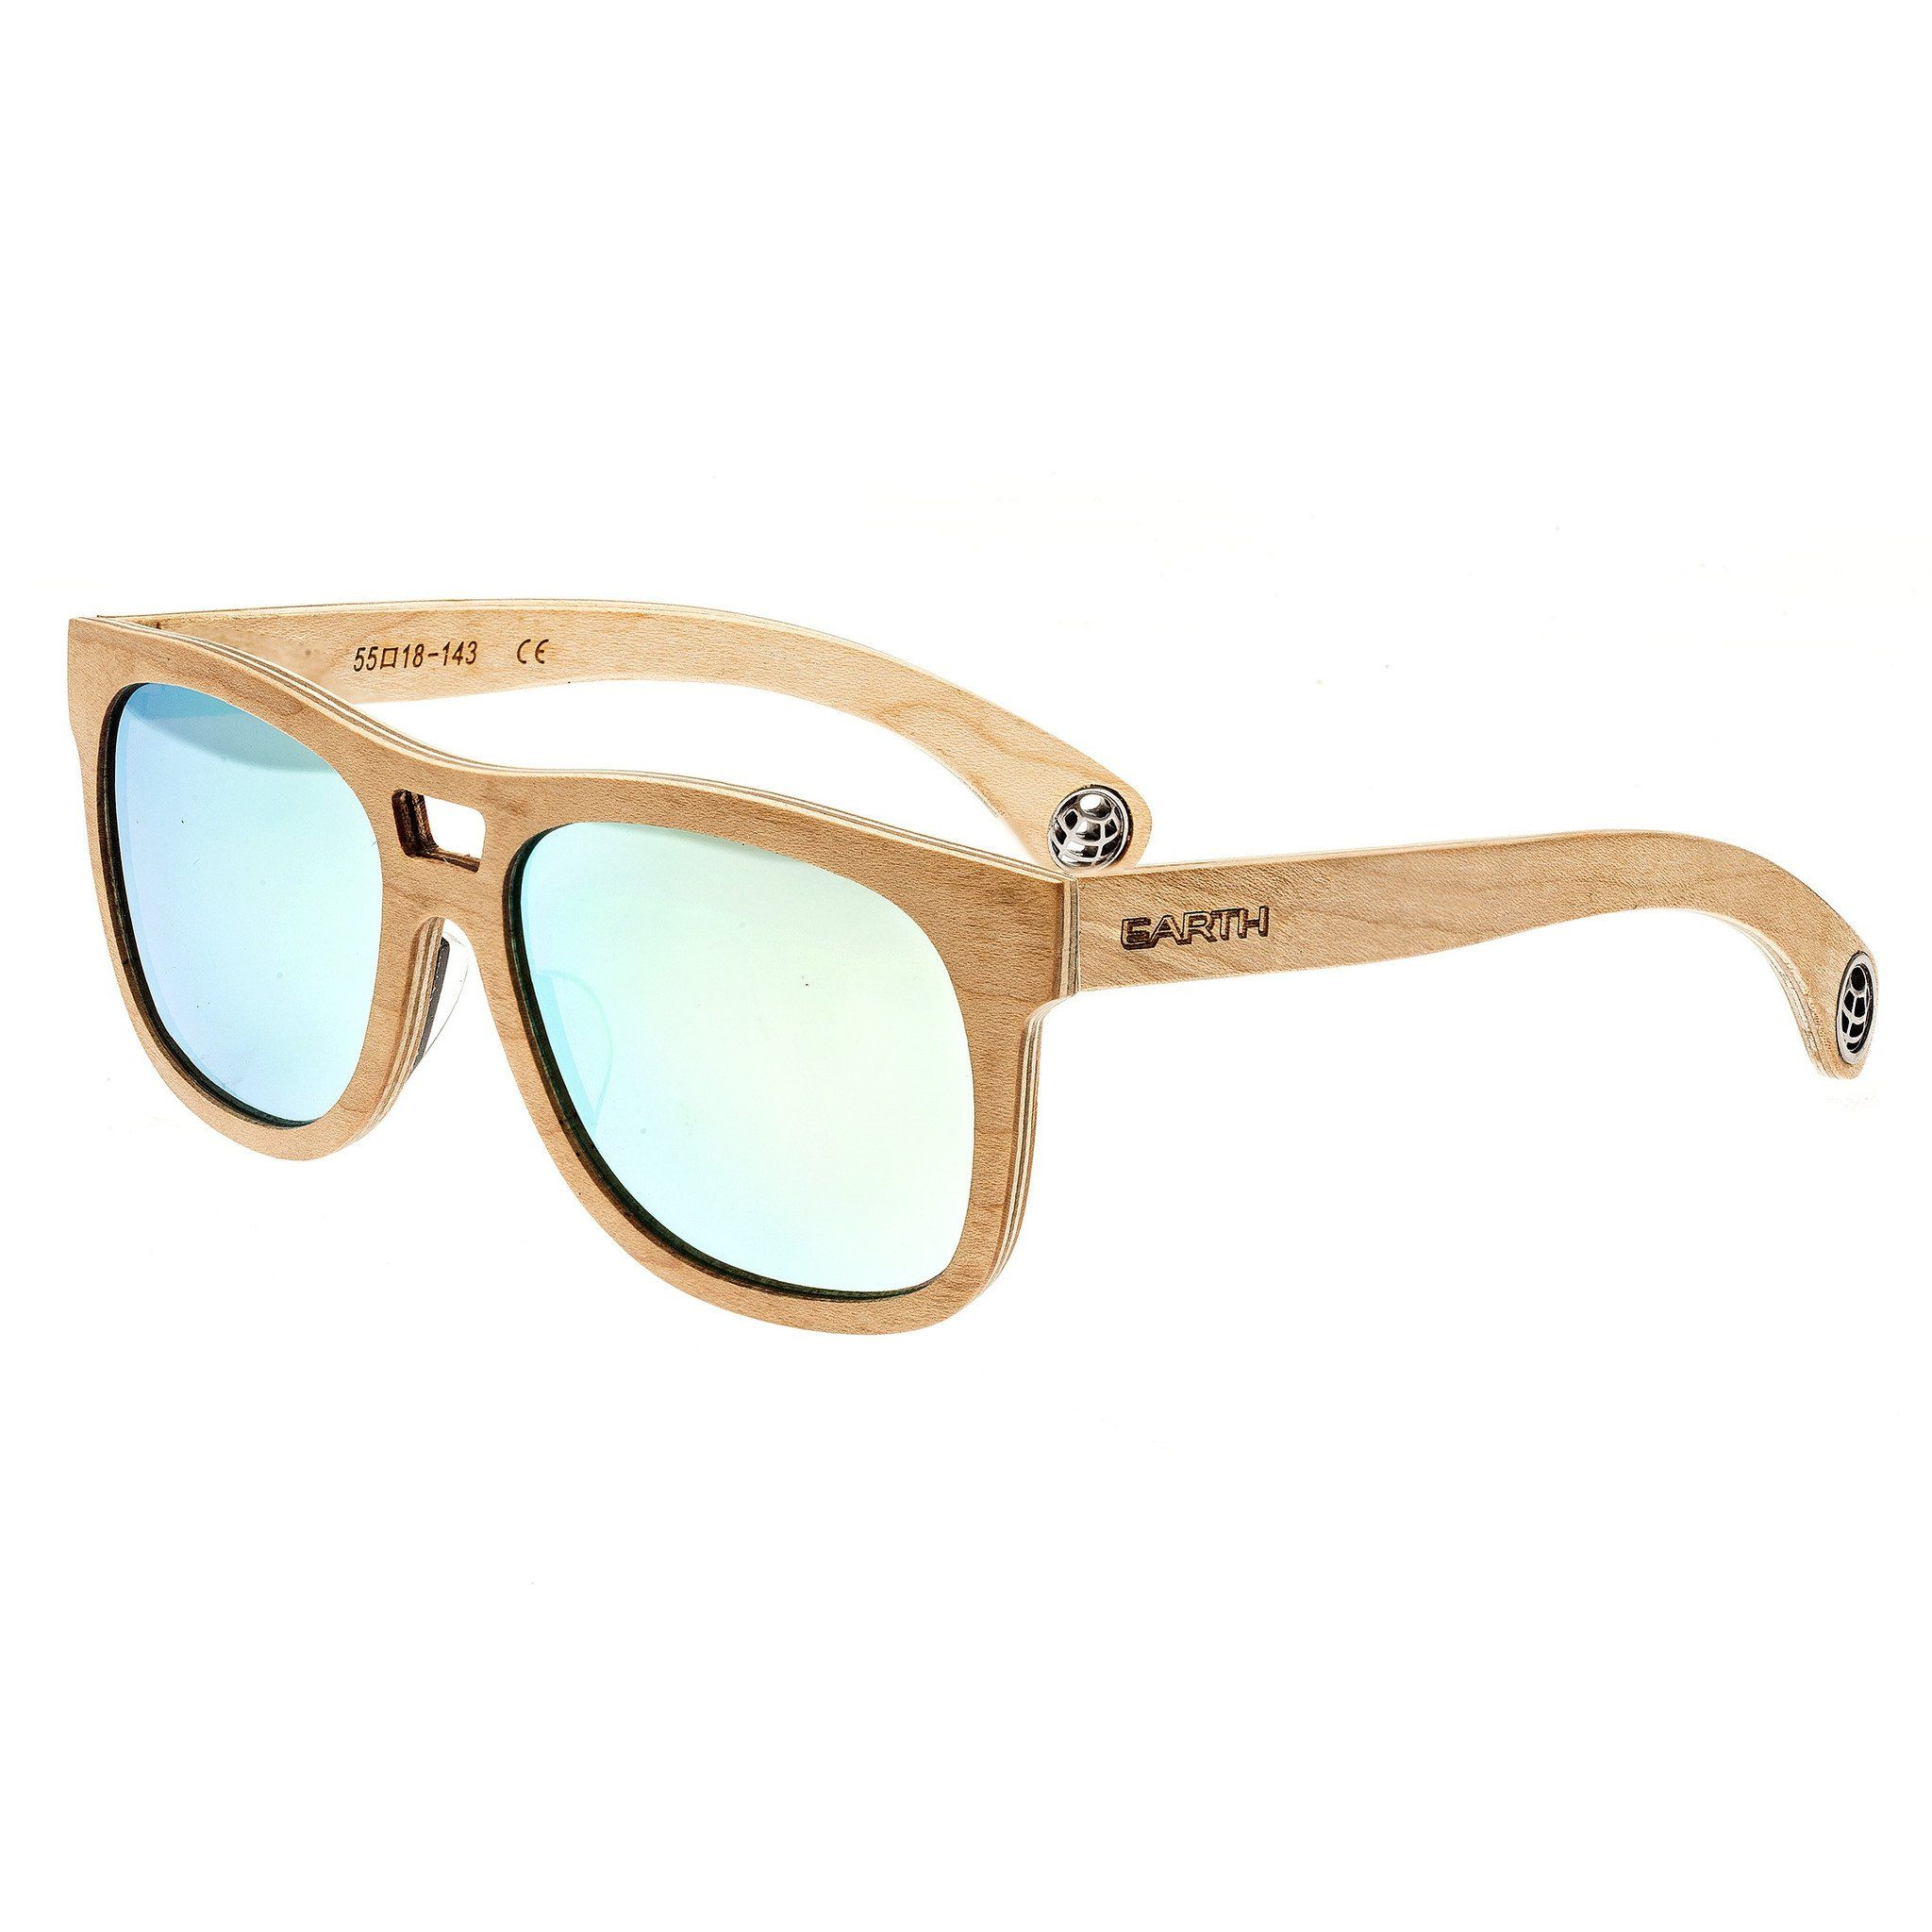 5561d16957 All of EARTH sunglasses are polarized  and we use the Triacetate Cellulose  (TAC)